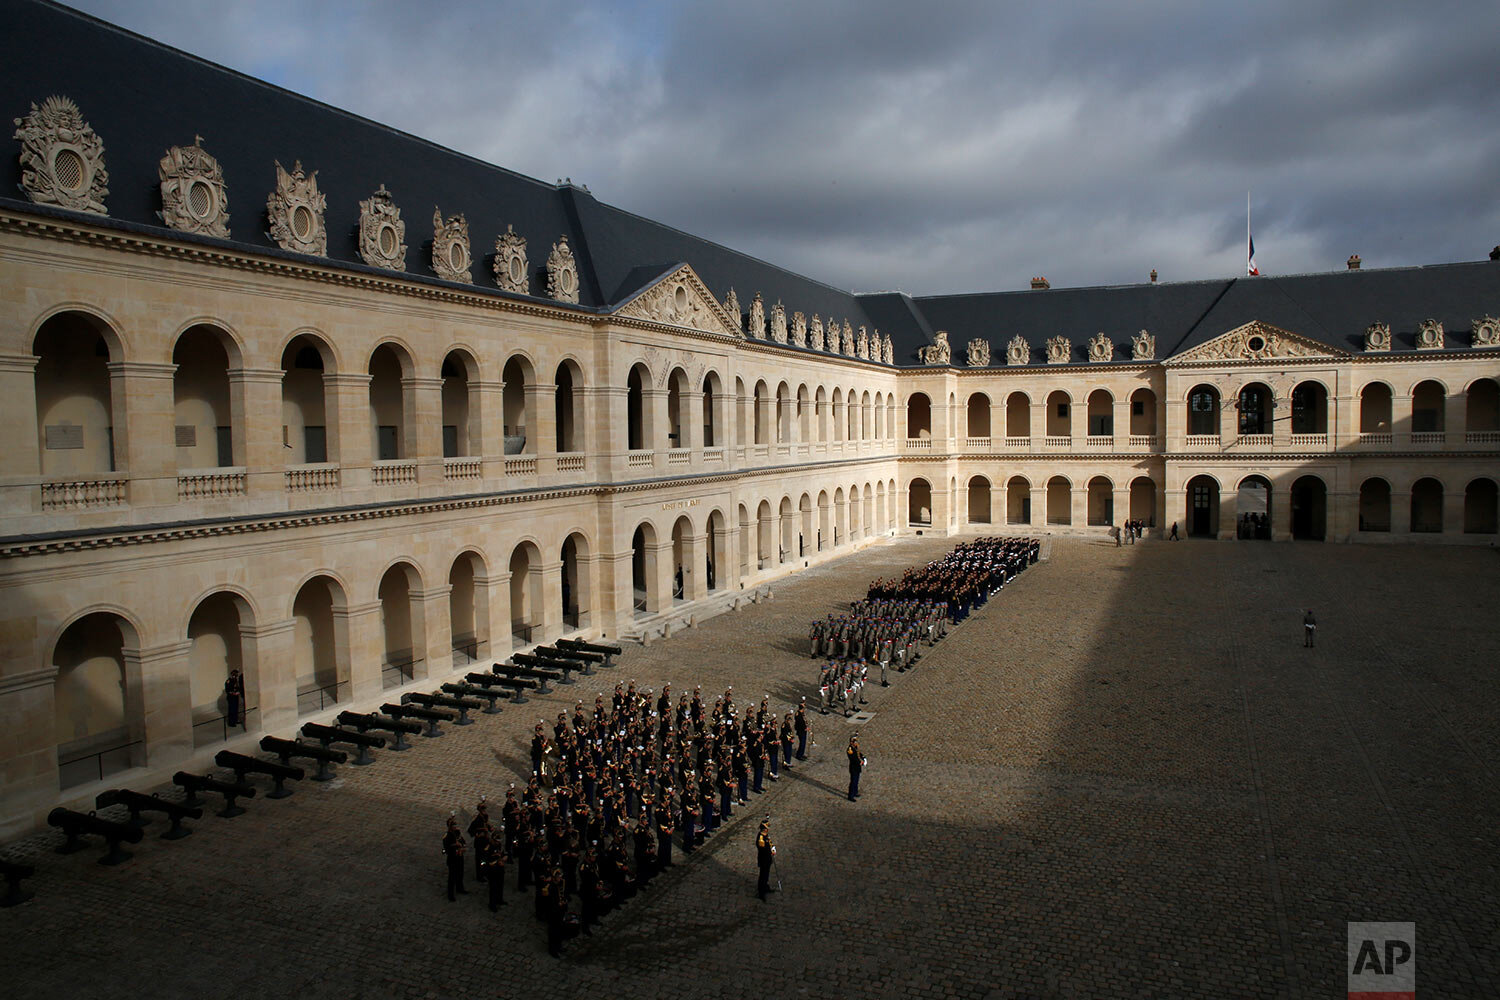 Members of the Republican Guard line up in the Invalides monument courtyard in Paris, Monday, Sept. 30, 2019. Past and current heads of states are gathered in Paris to pay tribute to former French President Jacques Chirac. He died at the age of 86. (AP Photo/Thibault Camus)